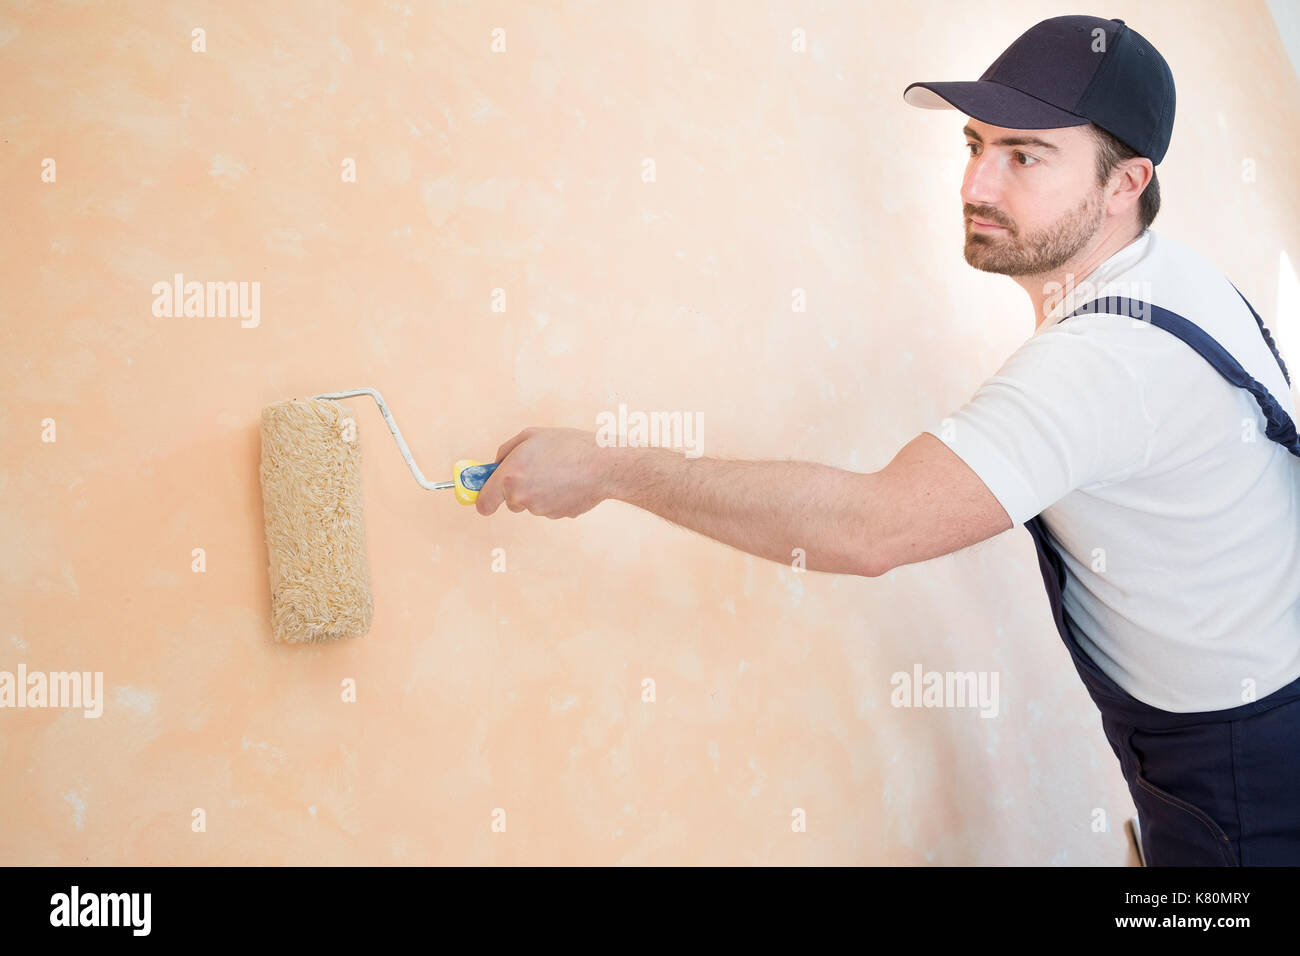 Professional painter worker is painting a wall - Stock Image